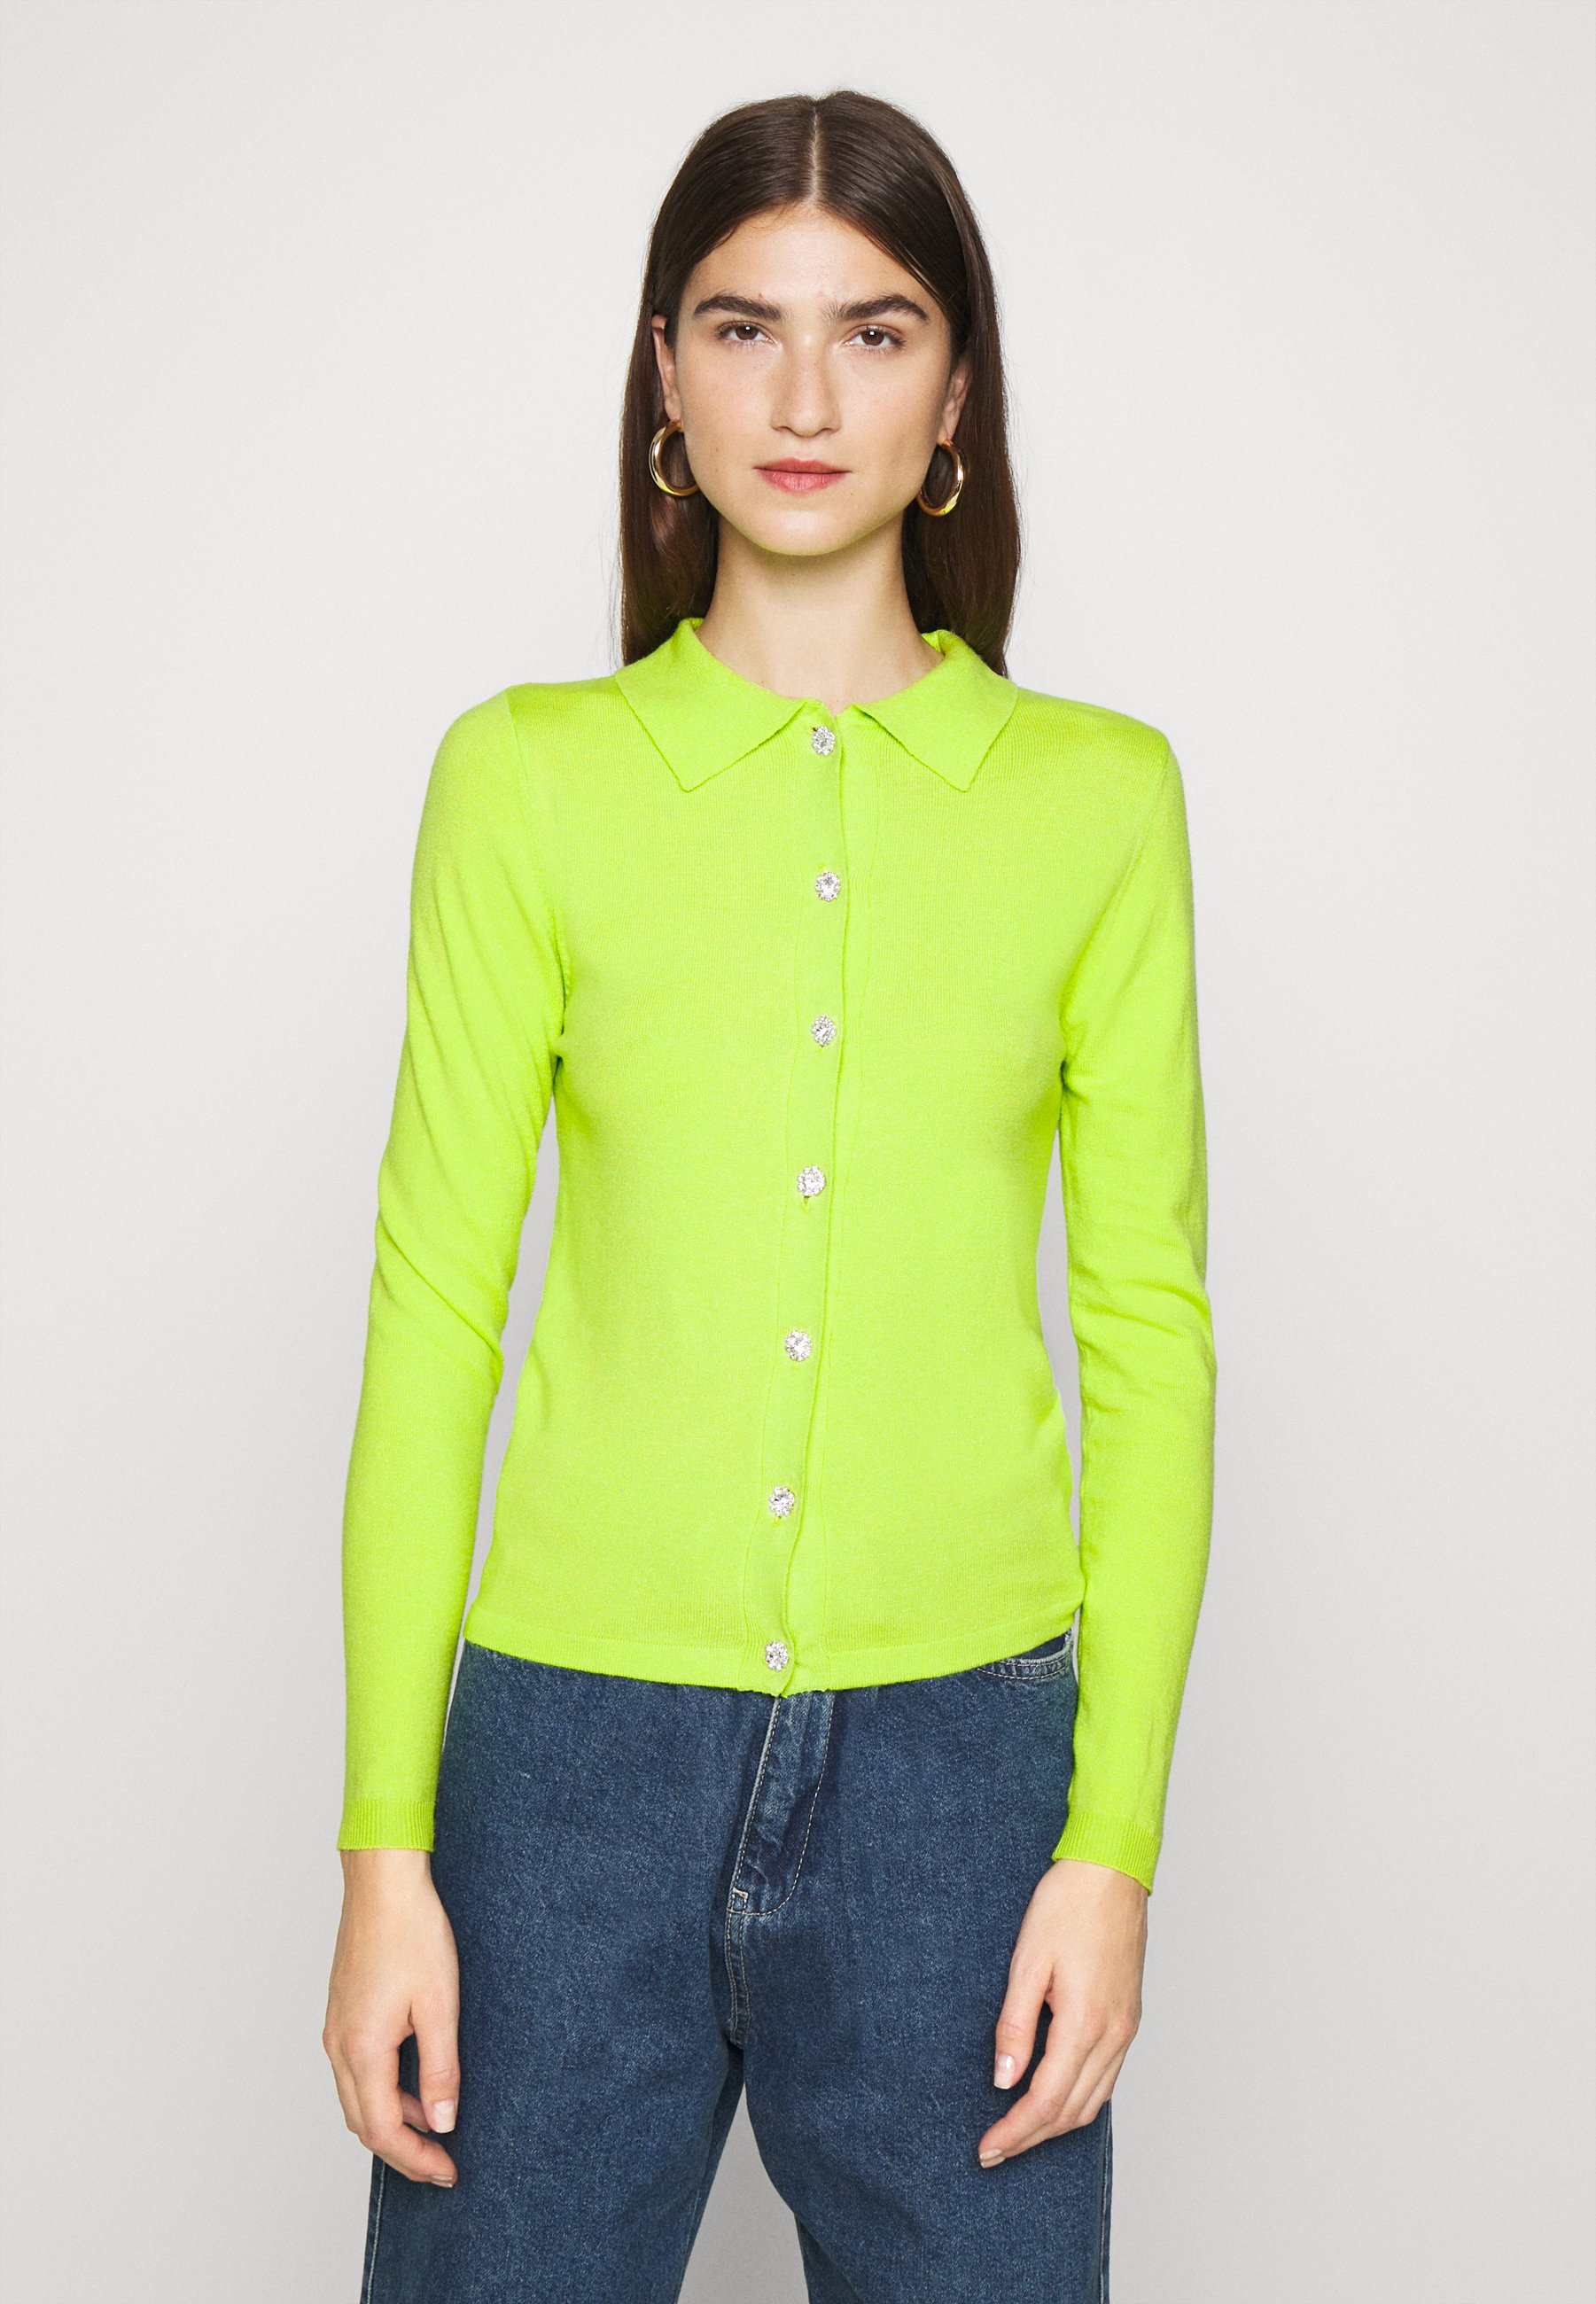 Exclusive Women's Clothing Who What Wear COLLARED CARDIGAN Cardigan acid lime LOSbYk8gl